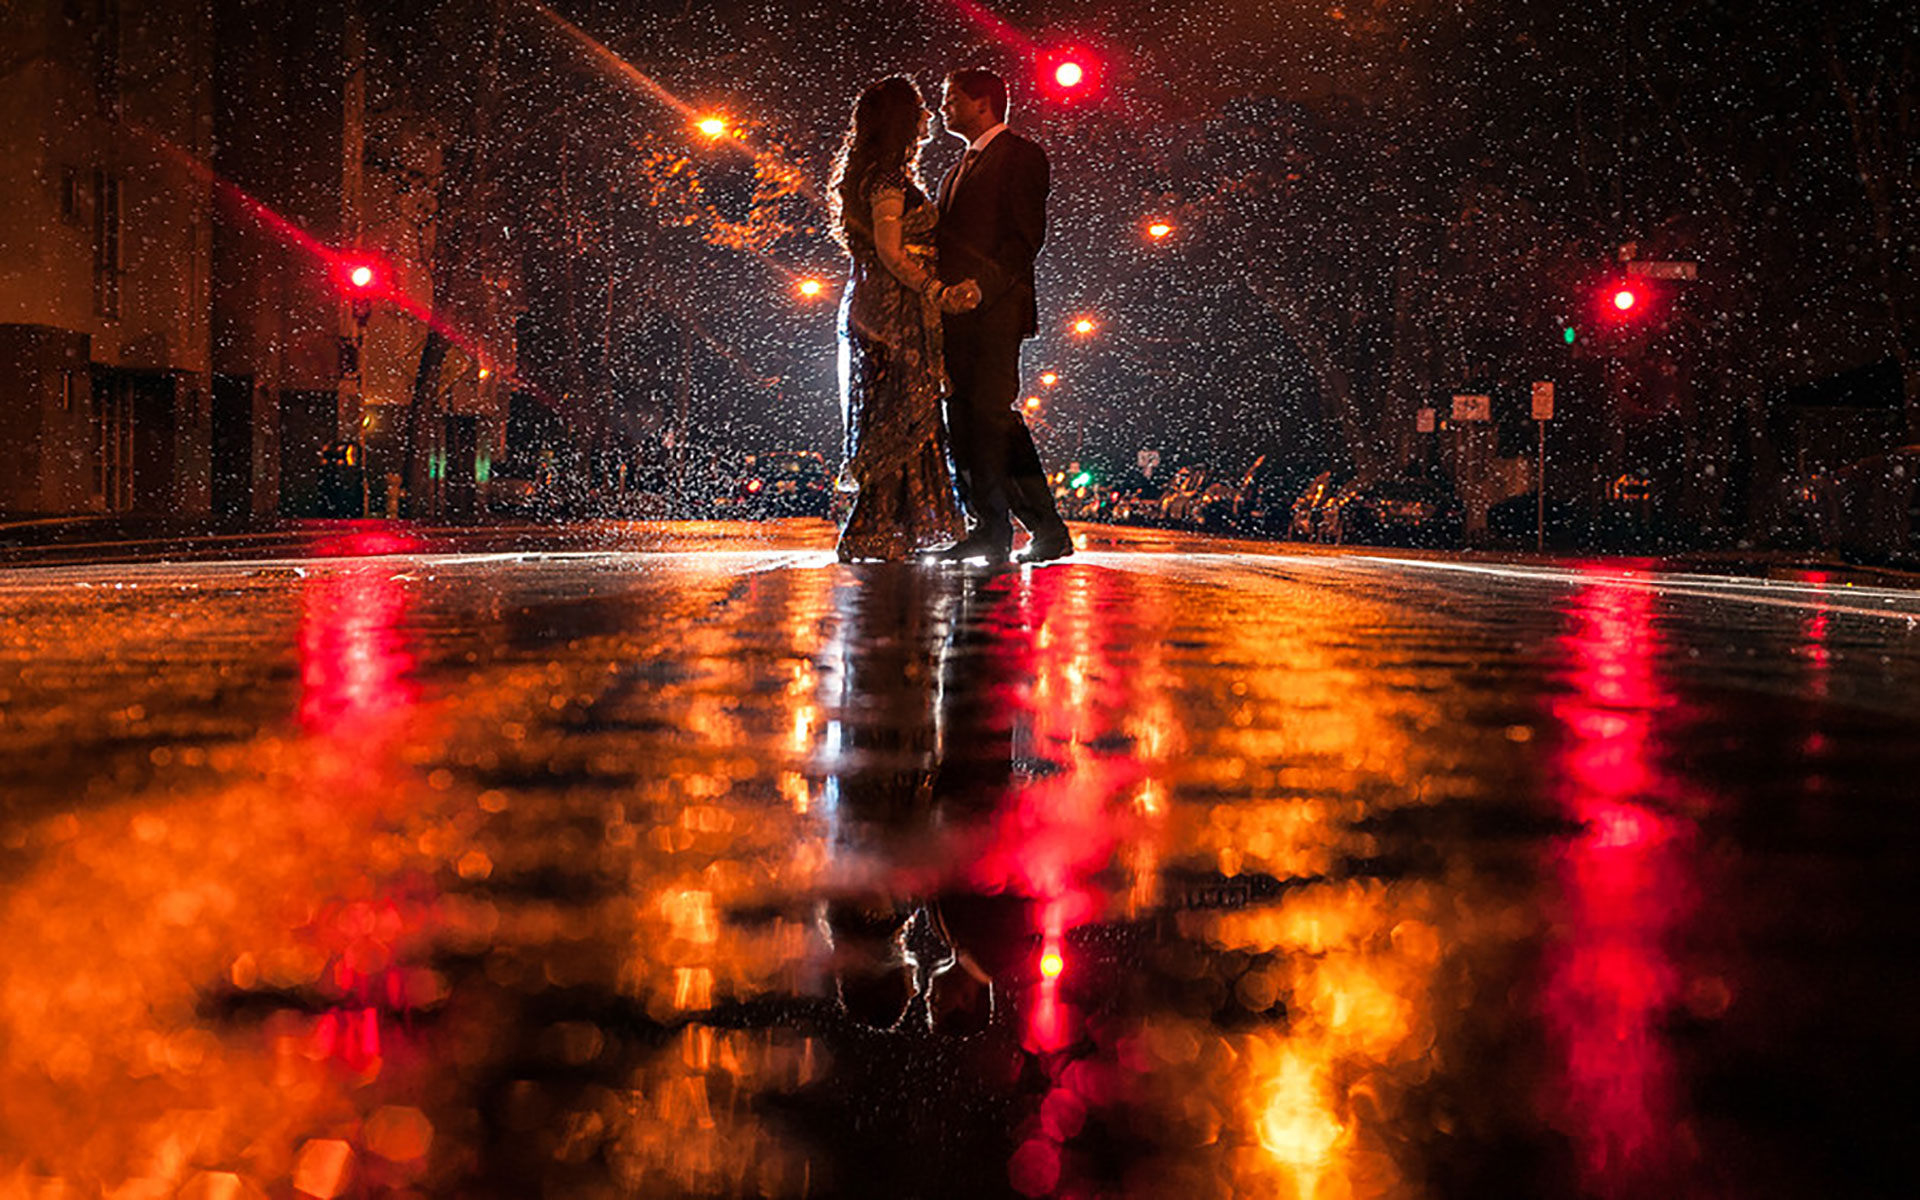 20 love couples romance in the rain wallpapers romance of cute couple in a rainy night thecheapjerseys Gallery